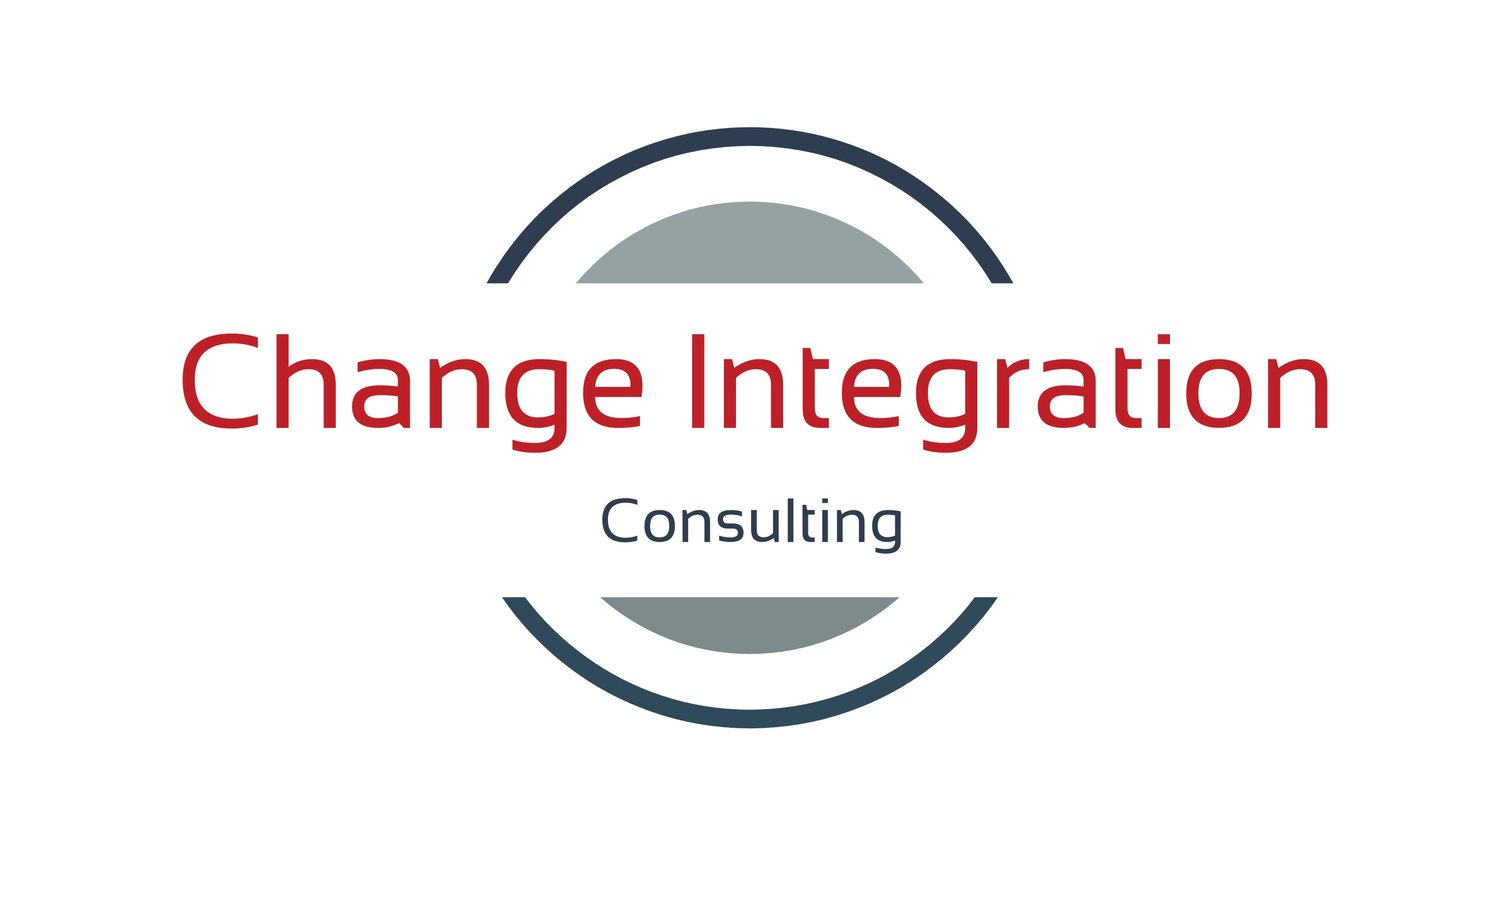 Change Integration Consulting